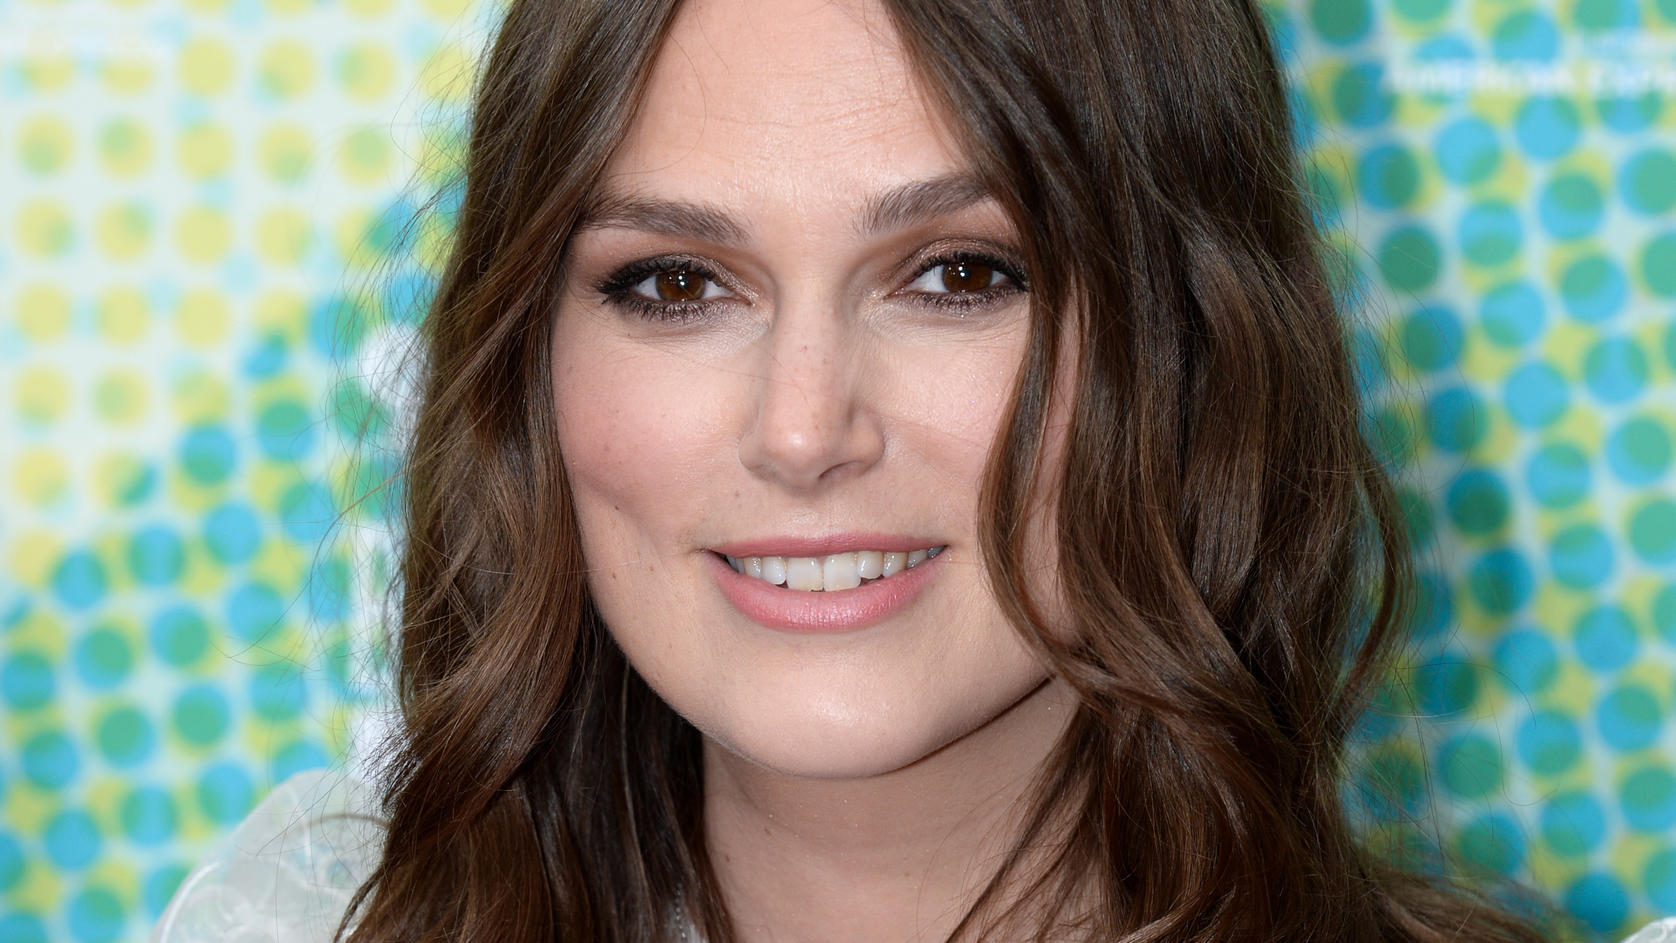 Official Secrets European Premiere - BFI London Film Festival 2019 Keira Knightley attending the Official Secrets European Premiere as part of the BFI London Film Festival 2019 held at the Embankment Garden Cinema, London. Picture credit should read